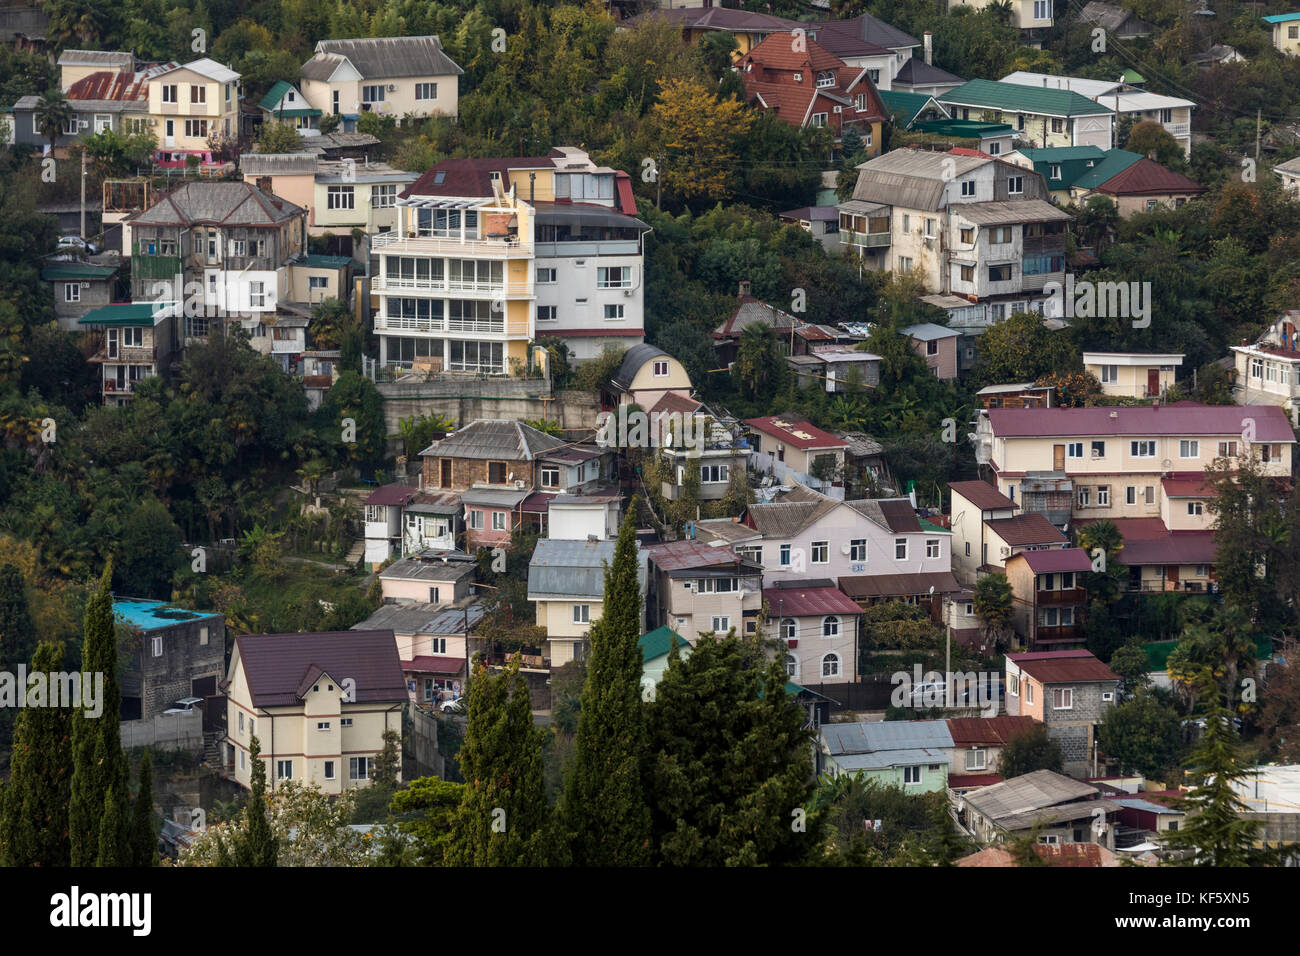 Aerial view of apartment buildings in central Sochi city, Russia - Stock Image